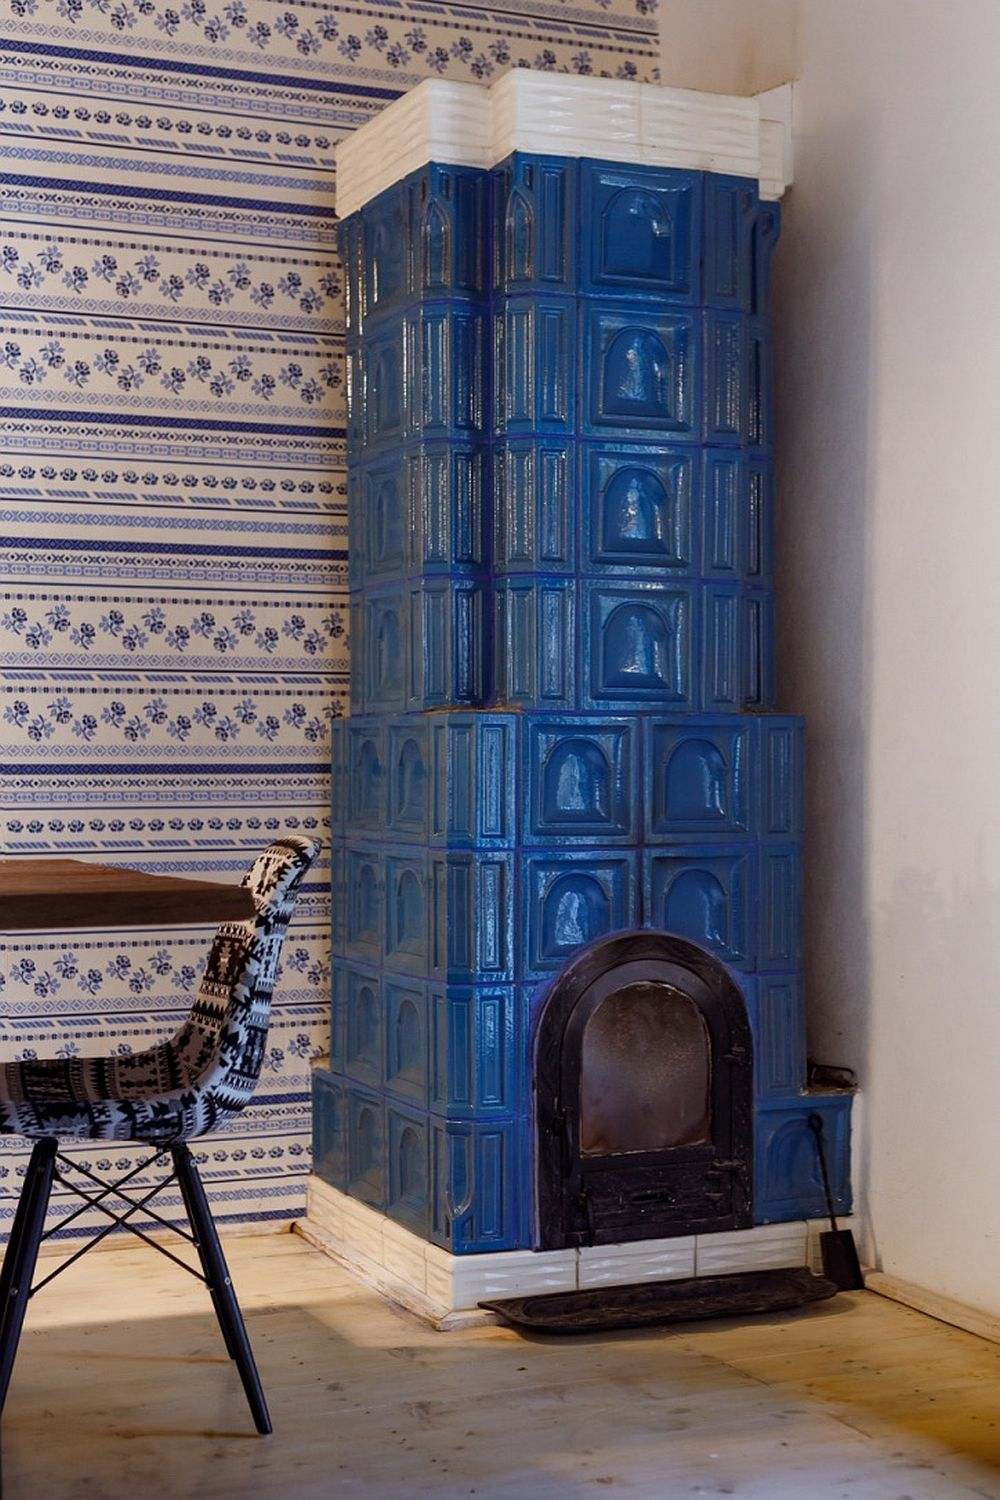 Here you'll see another vintage hearth painted bold blue, which adds coziness to the space